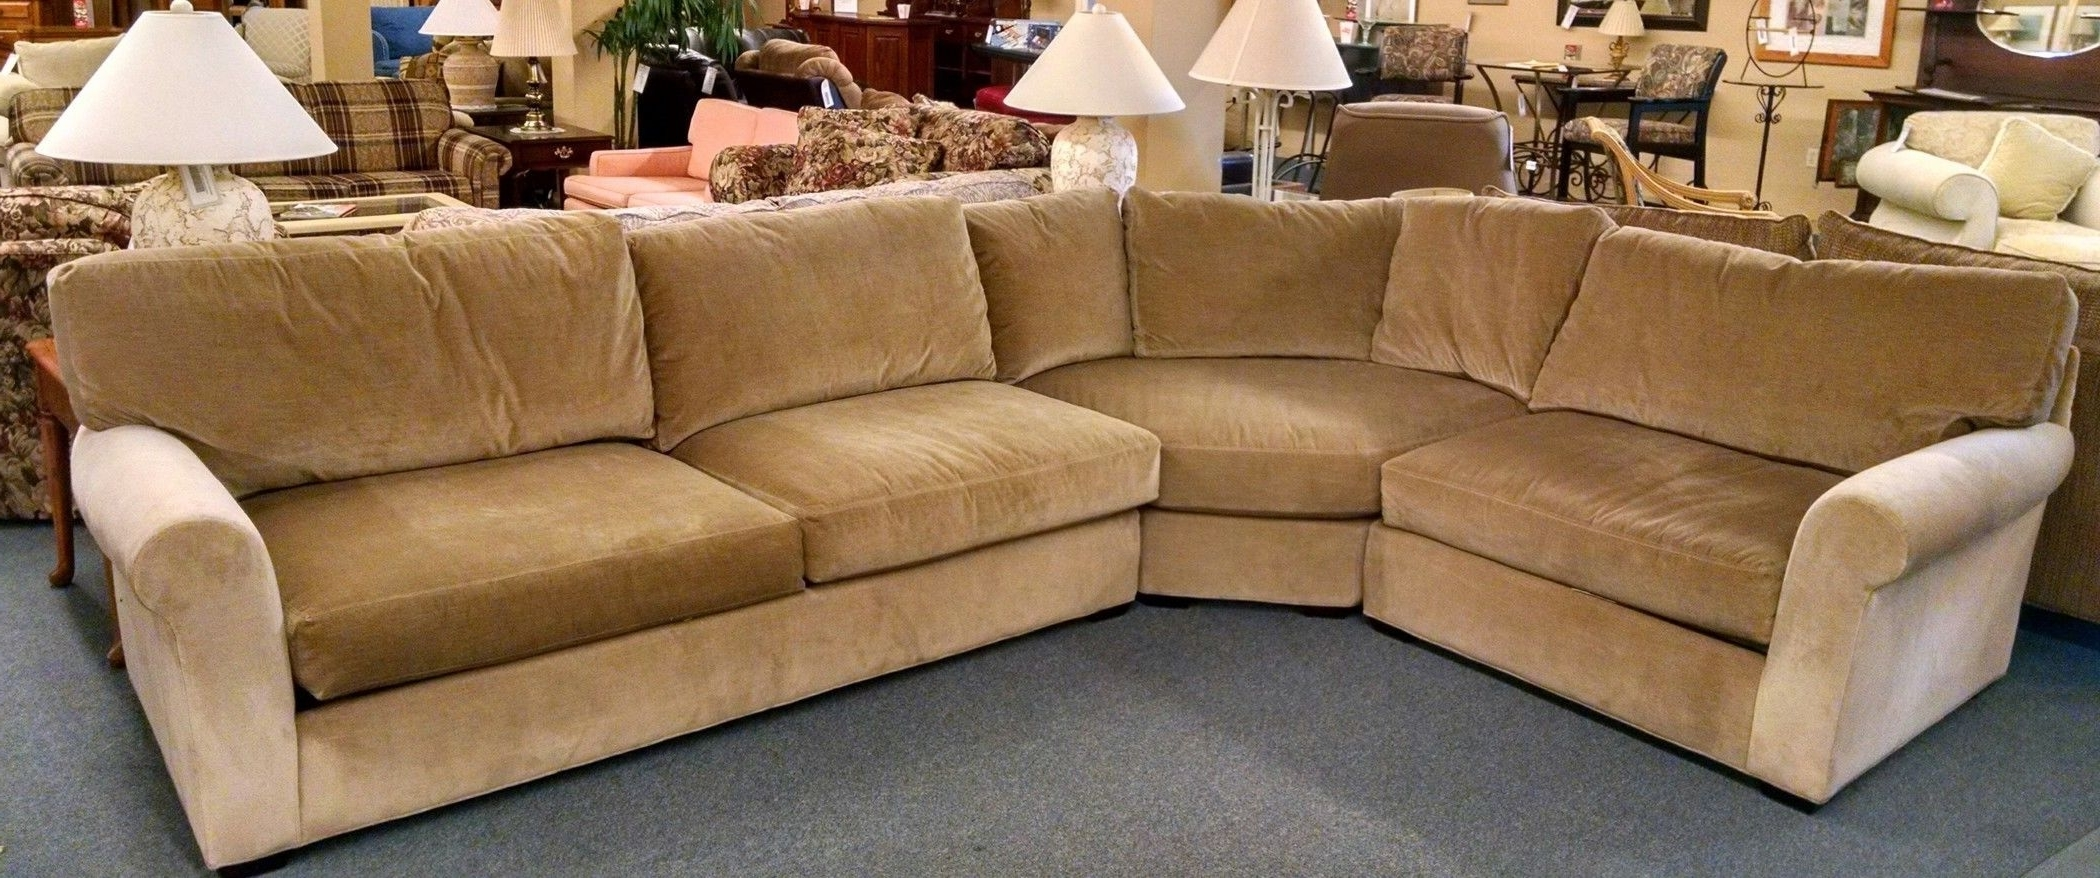 Delmarva Furniture Consignment Within Current Lee Industries Sectional Sofas (View 5 of 15)